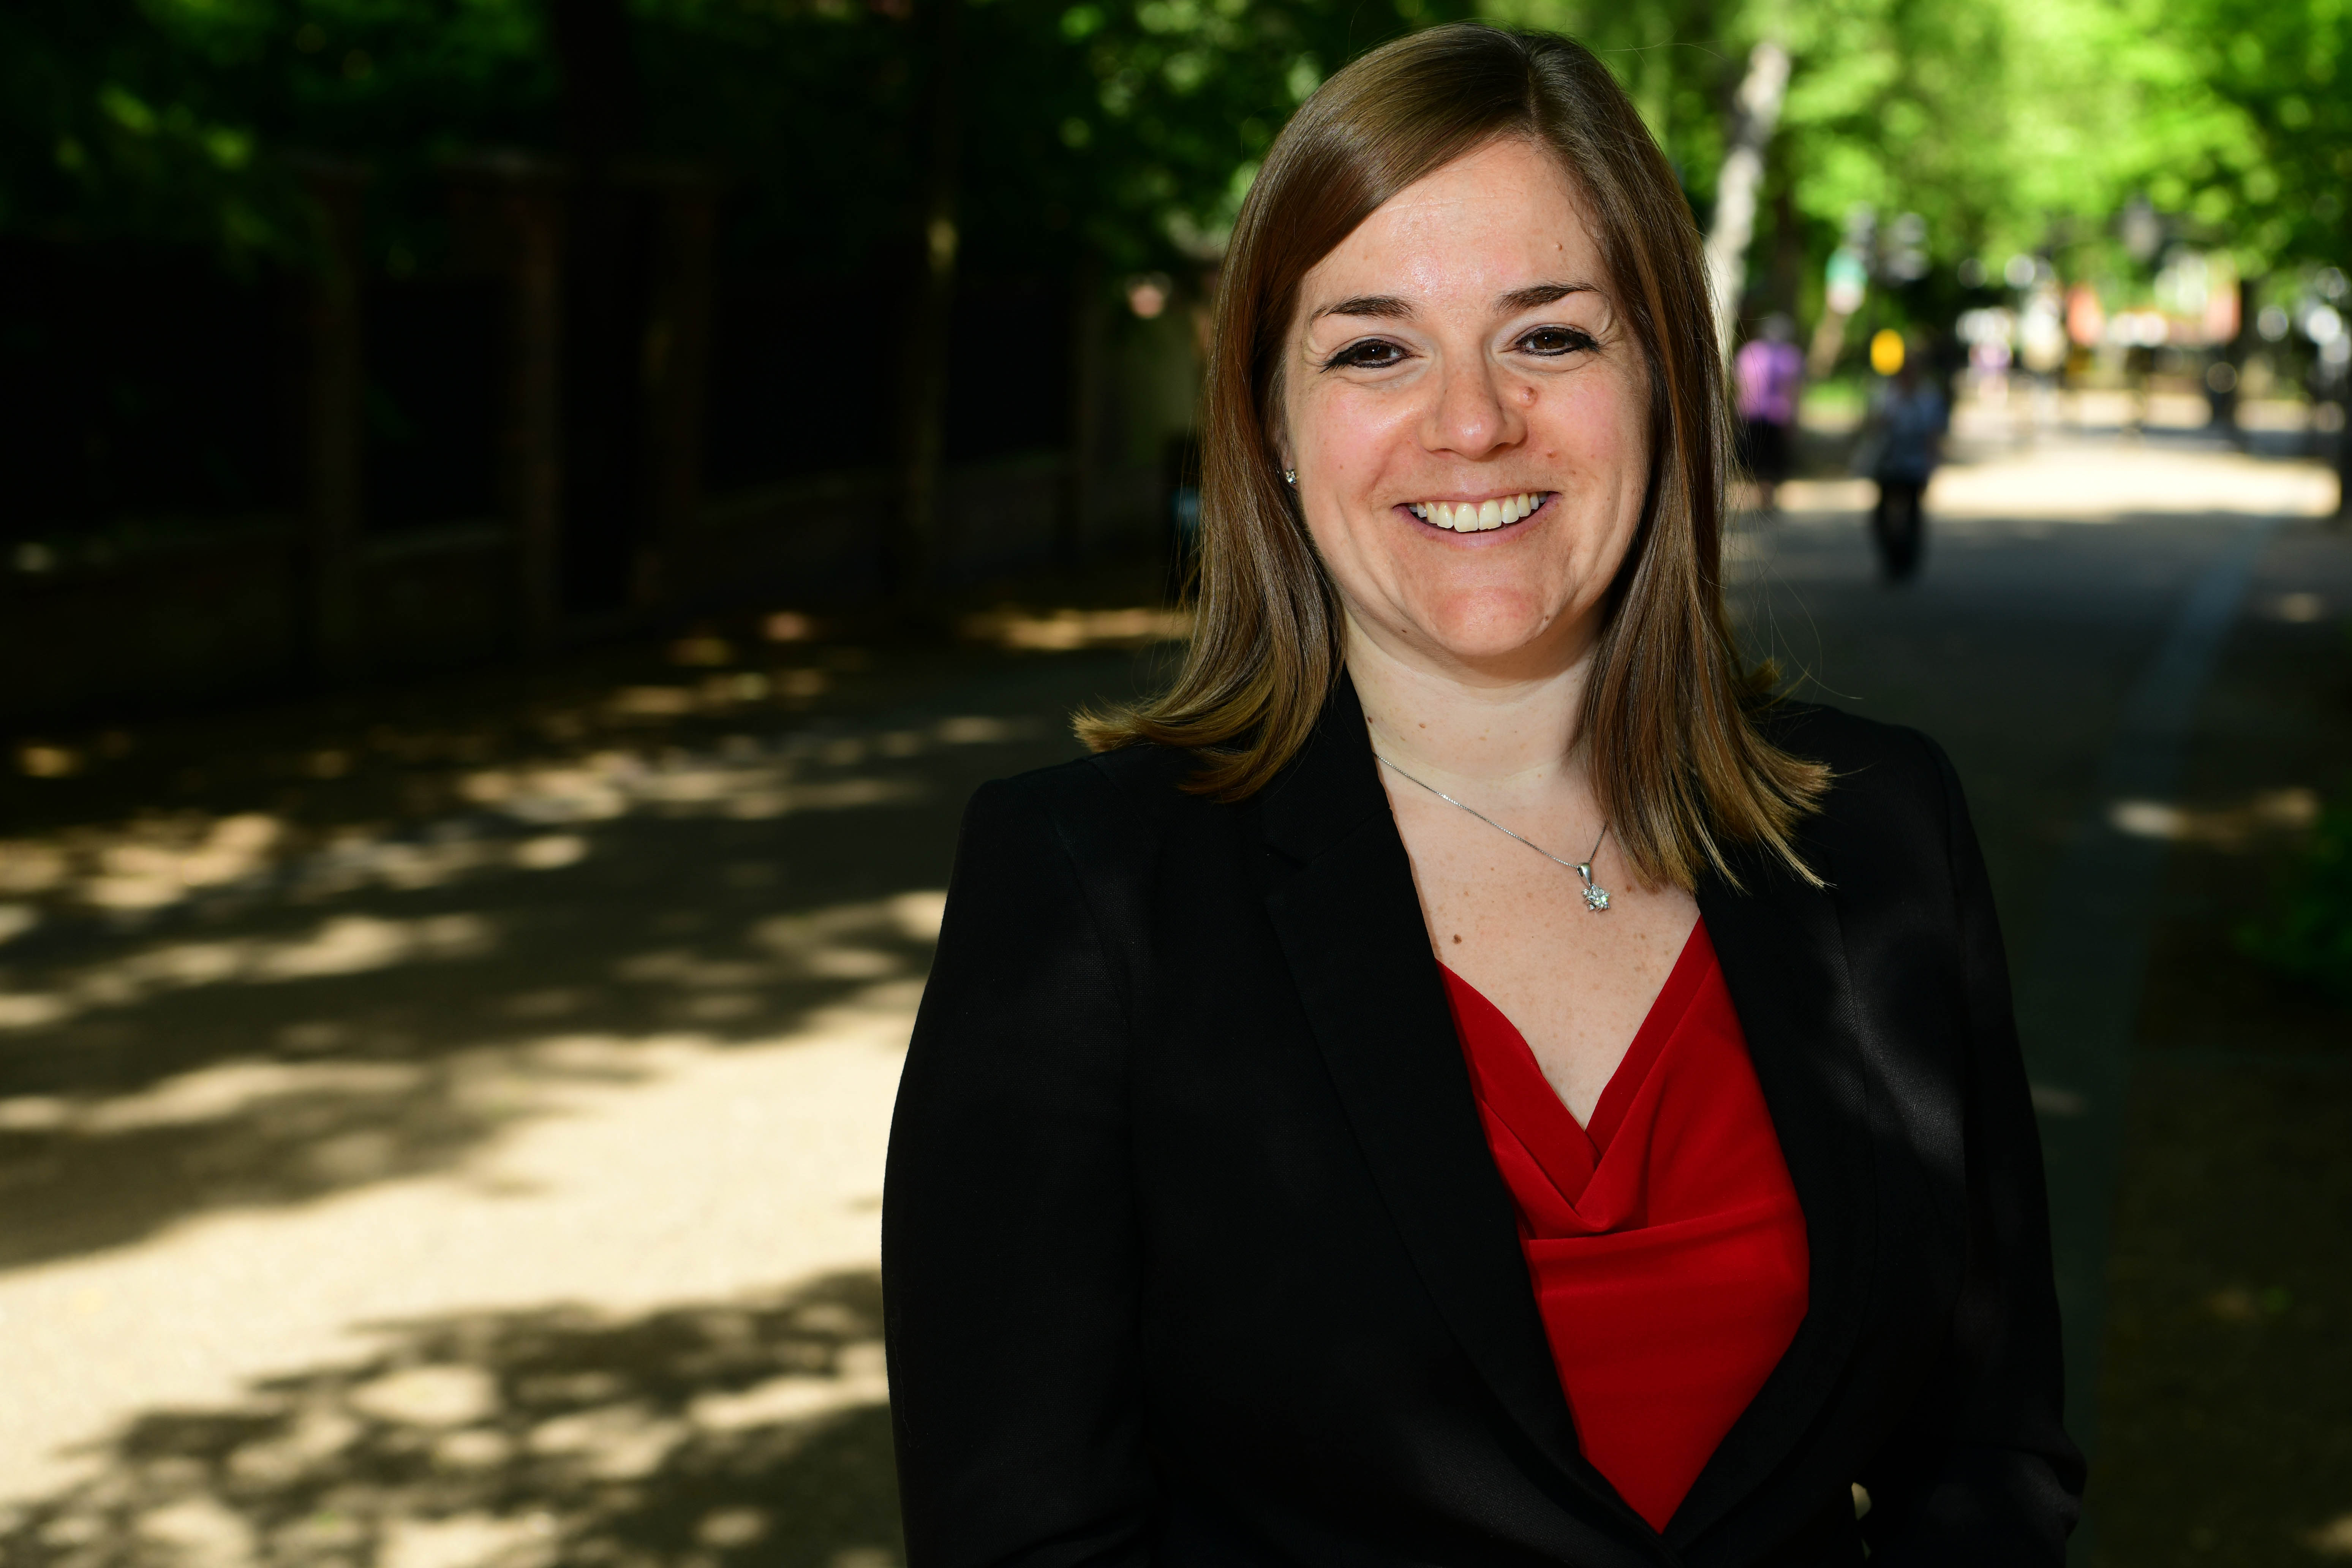 British Business Bank appoints new Director for the Midlands